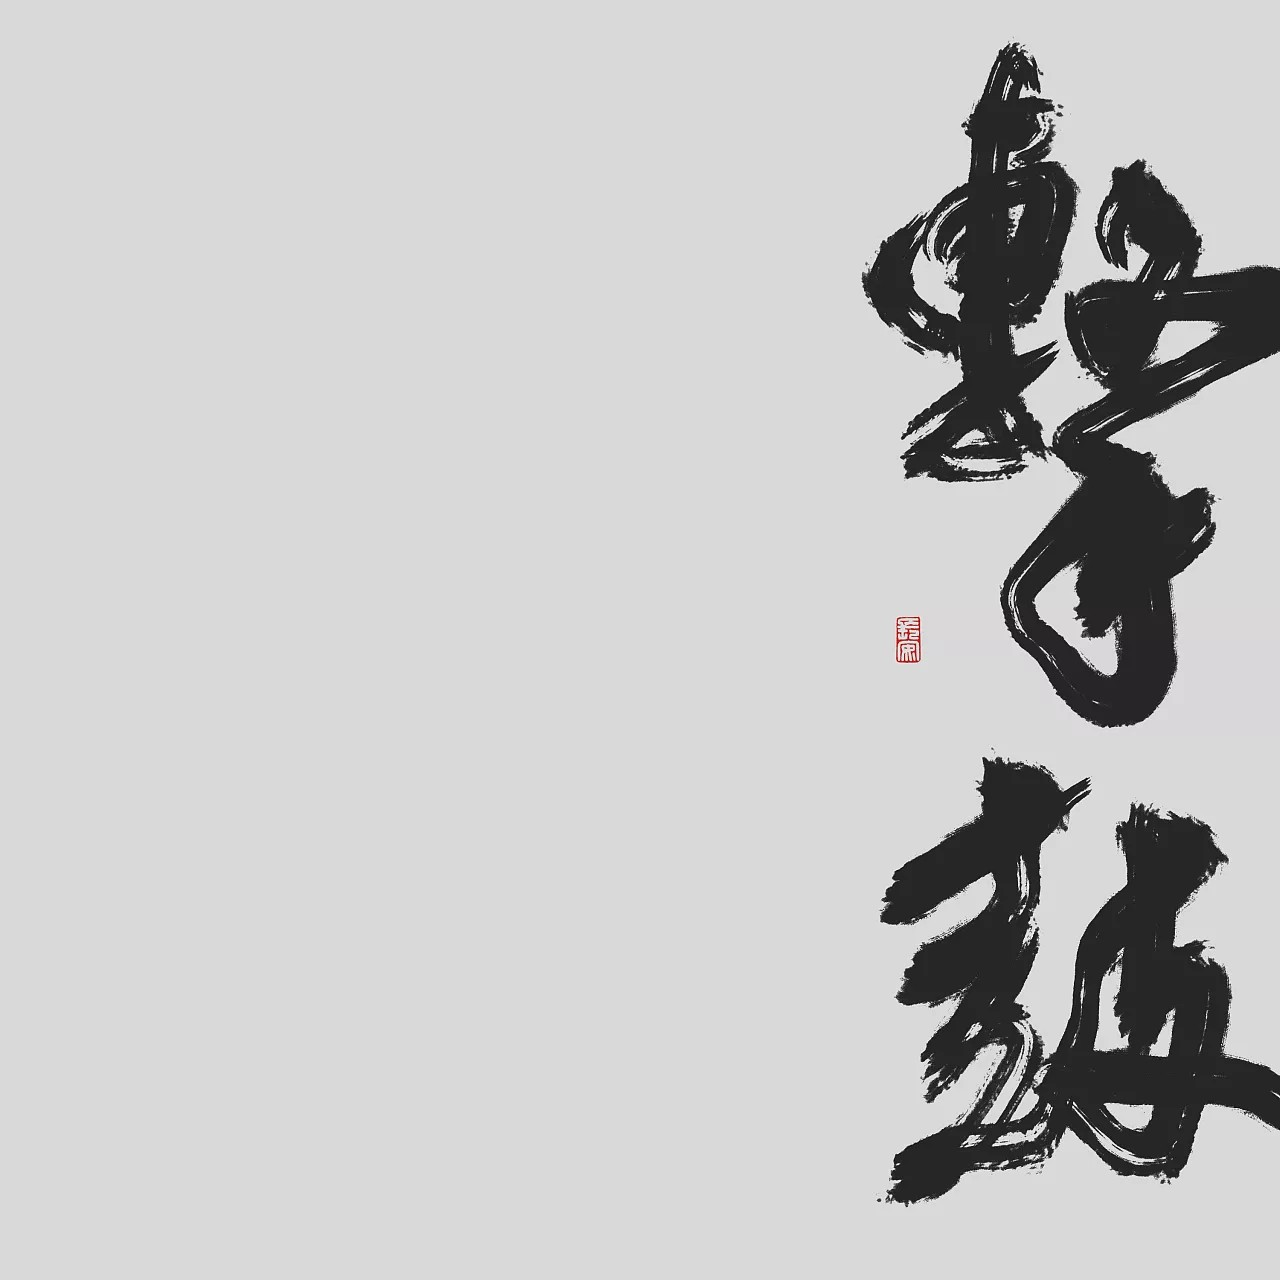 6P Chinese traditional calligraphy brush calligraphy font style appreciation #.230